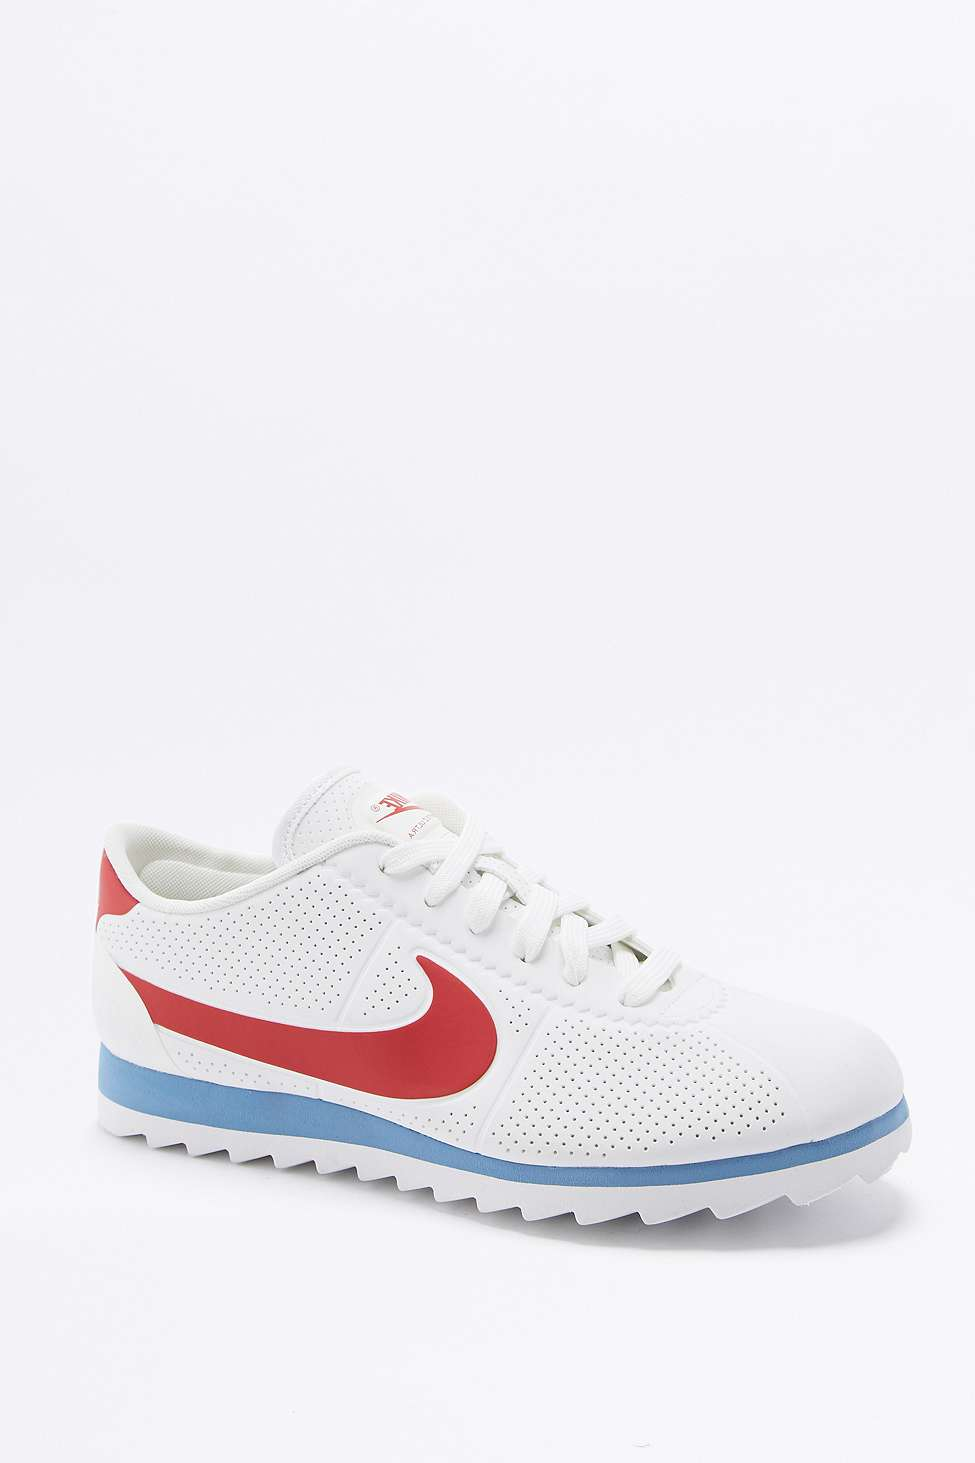 detailed look 7c218 316a0 Nike Cortez Ultra Moire Red, White, and Blue Sneakers